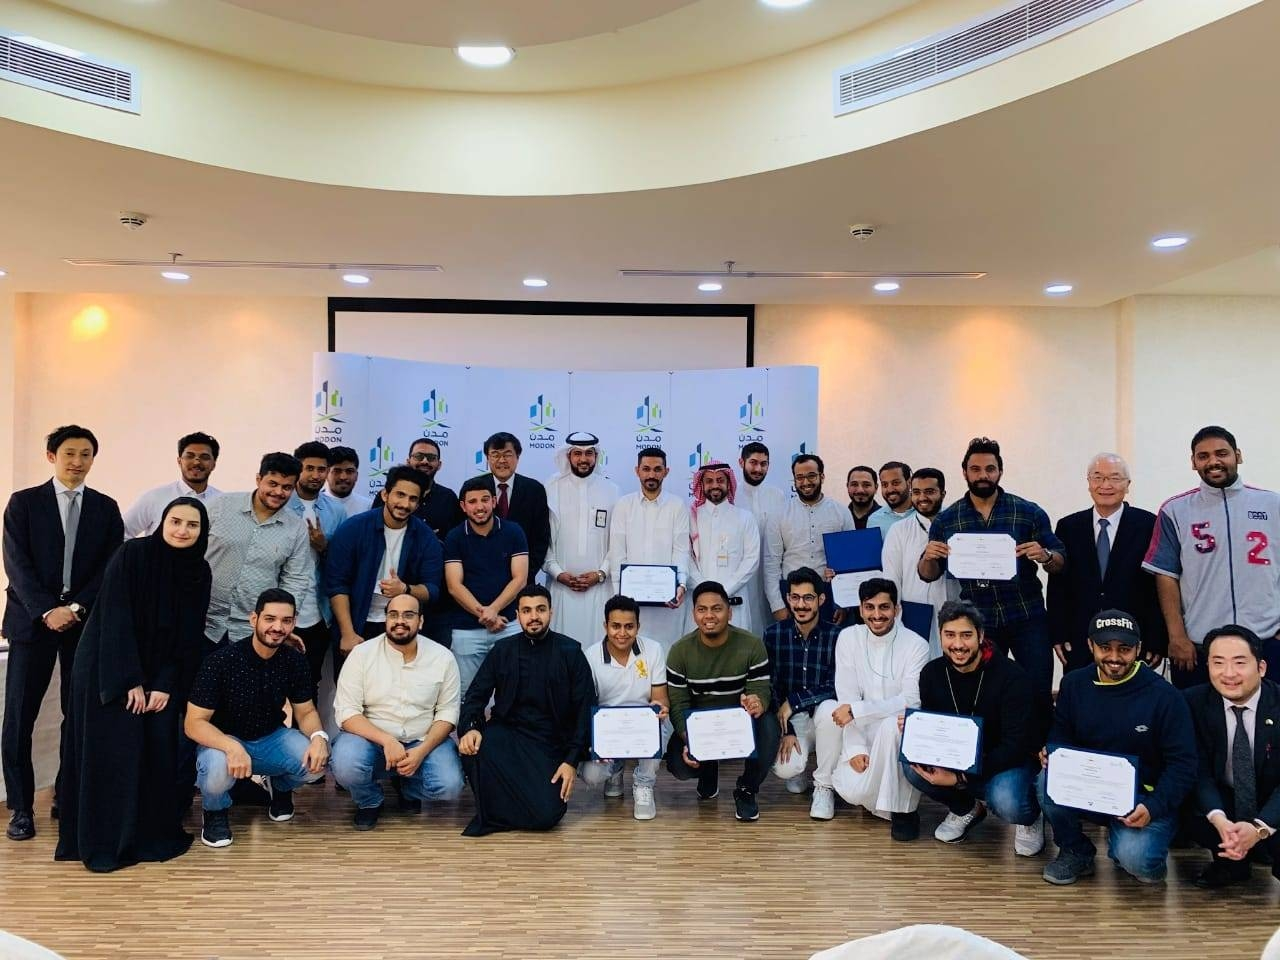 Saudi engineers made the most a five-day training program on lean production, which was conducted at the Saudi Authority for Industrial Cities and Technology Zones (Modon) in Jeddah on Feb. 2-6.